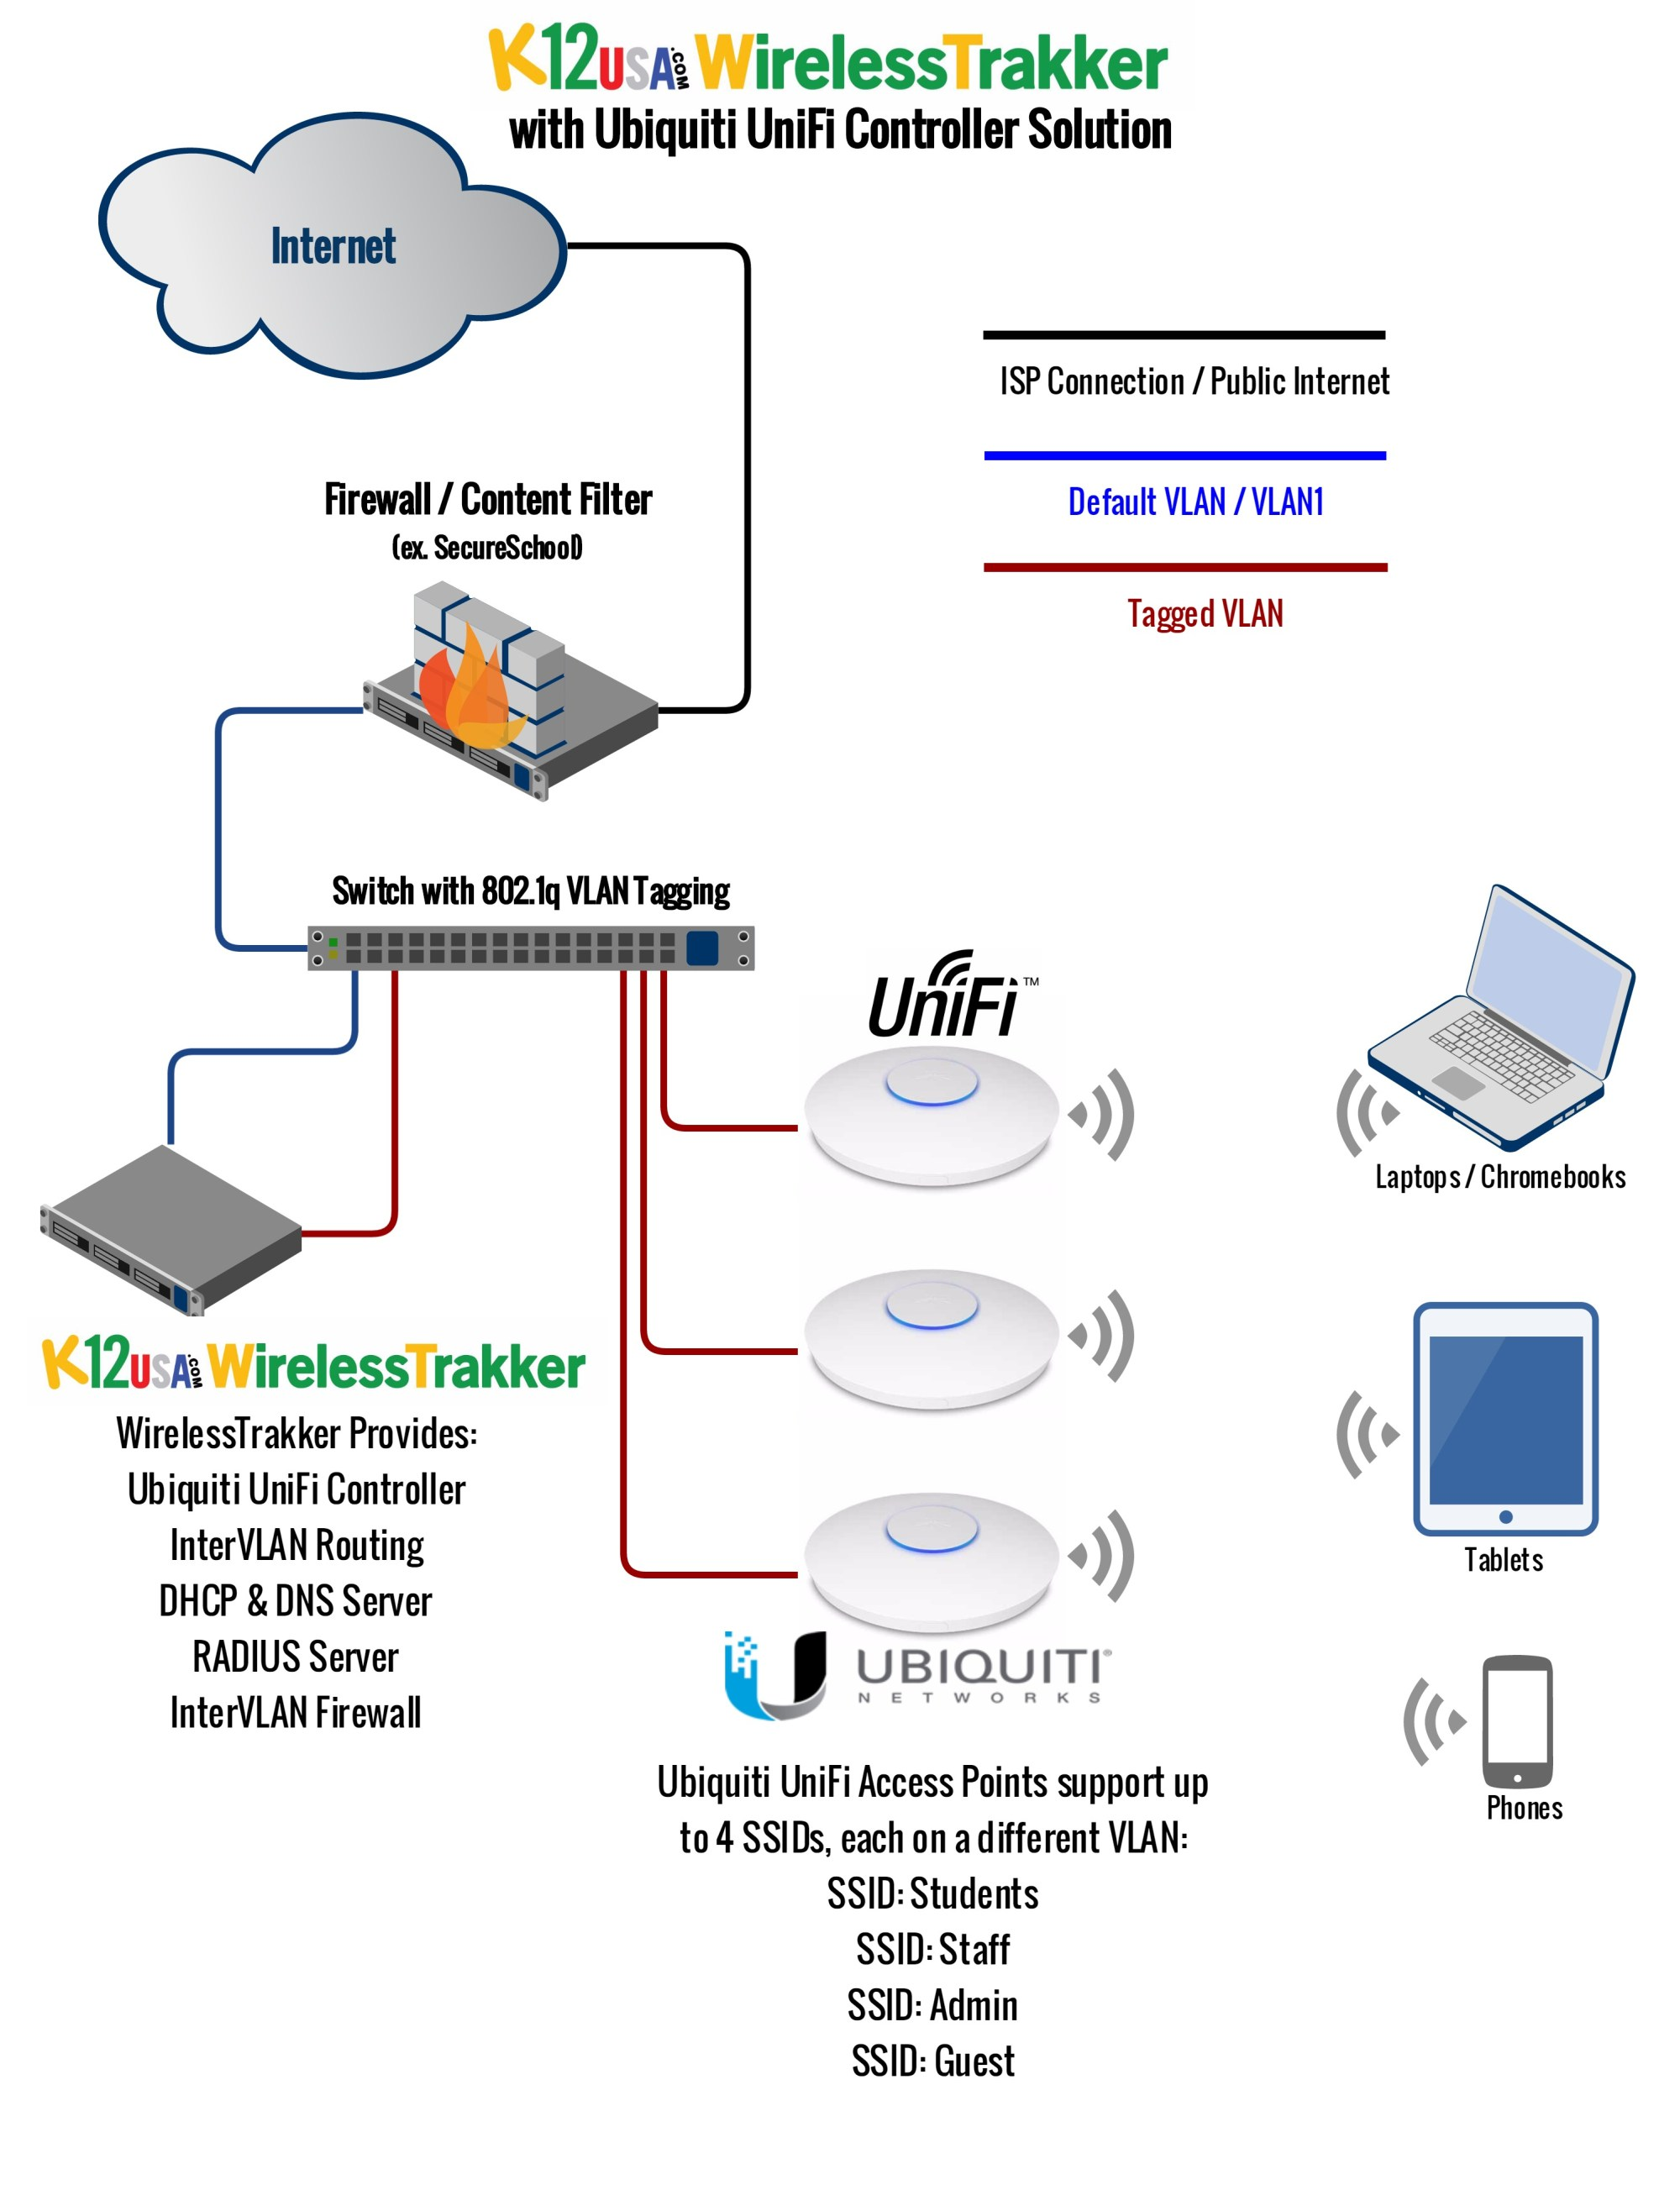 hight resolution of ubiquiti wiring diagram wiring diagram hostubiquiti wiring diagram wiring diagram sys ubiquiti poe wiring diagram ubiquiti